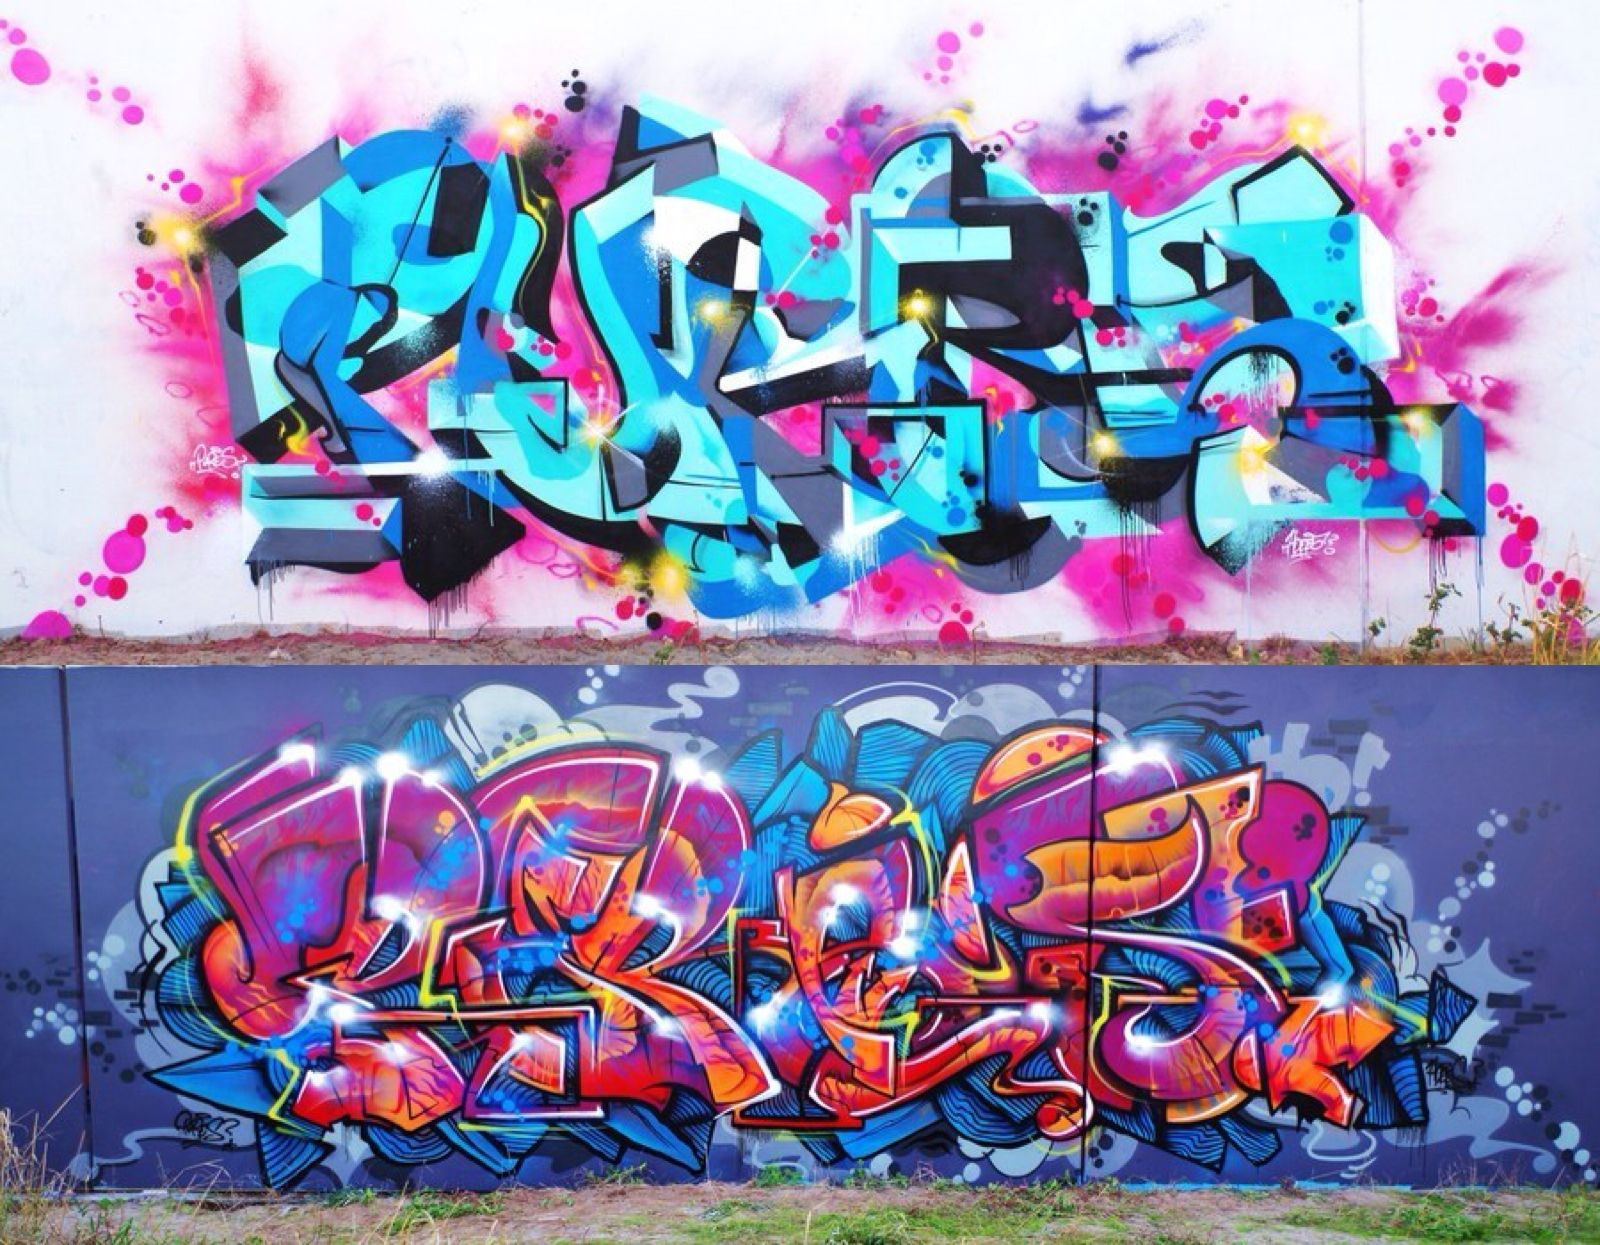 Two fresh burners from @_pures in Aus (http://globalstreetart.com/pures-hd).